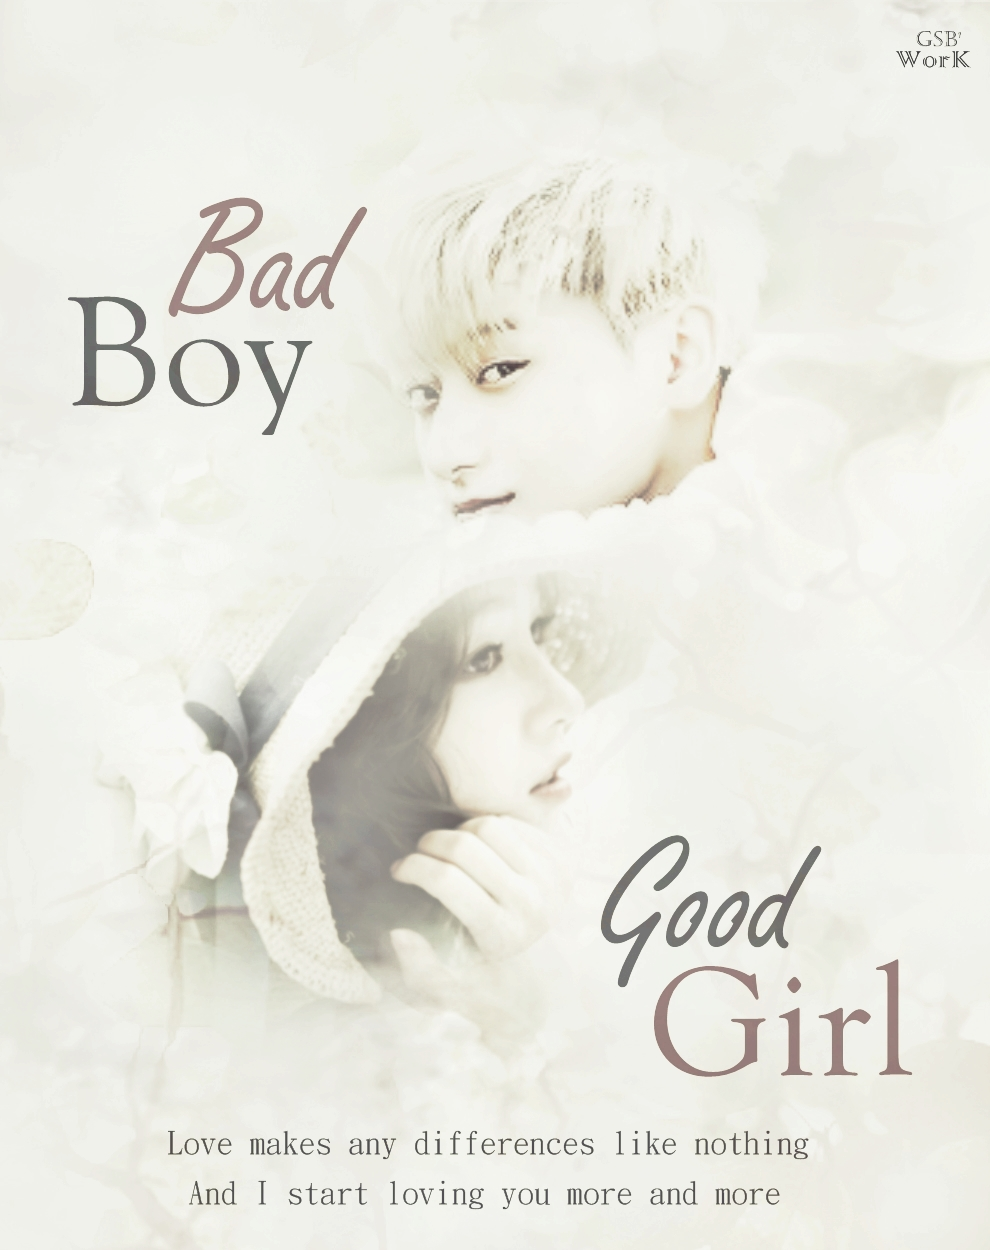 bad girl meets good boy Update: shes a good gill looking to make new friends when they tell her to stay away from the bad boy.